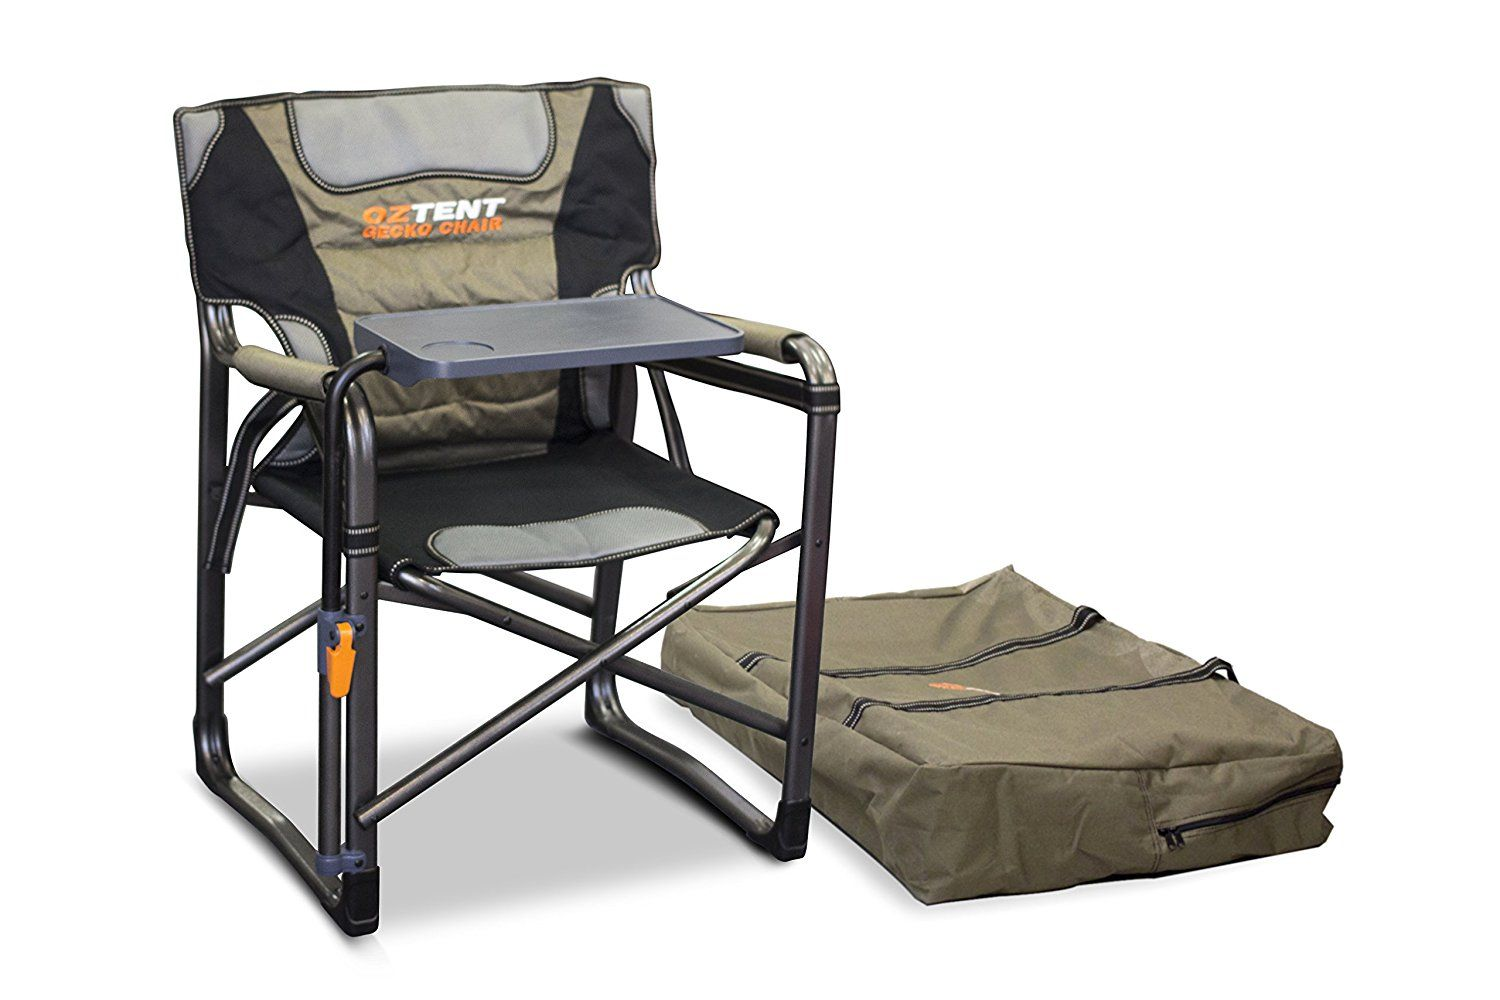 Oztent Gecko Camping Chair With Lumbar Support And Swivel